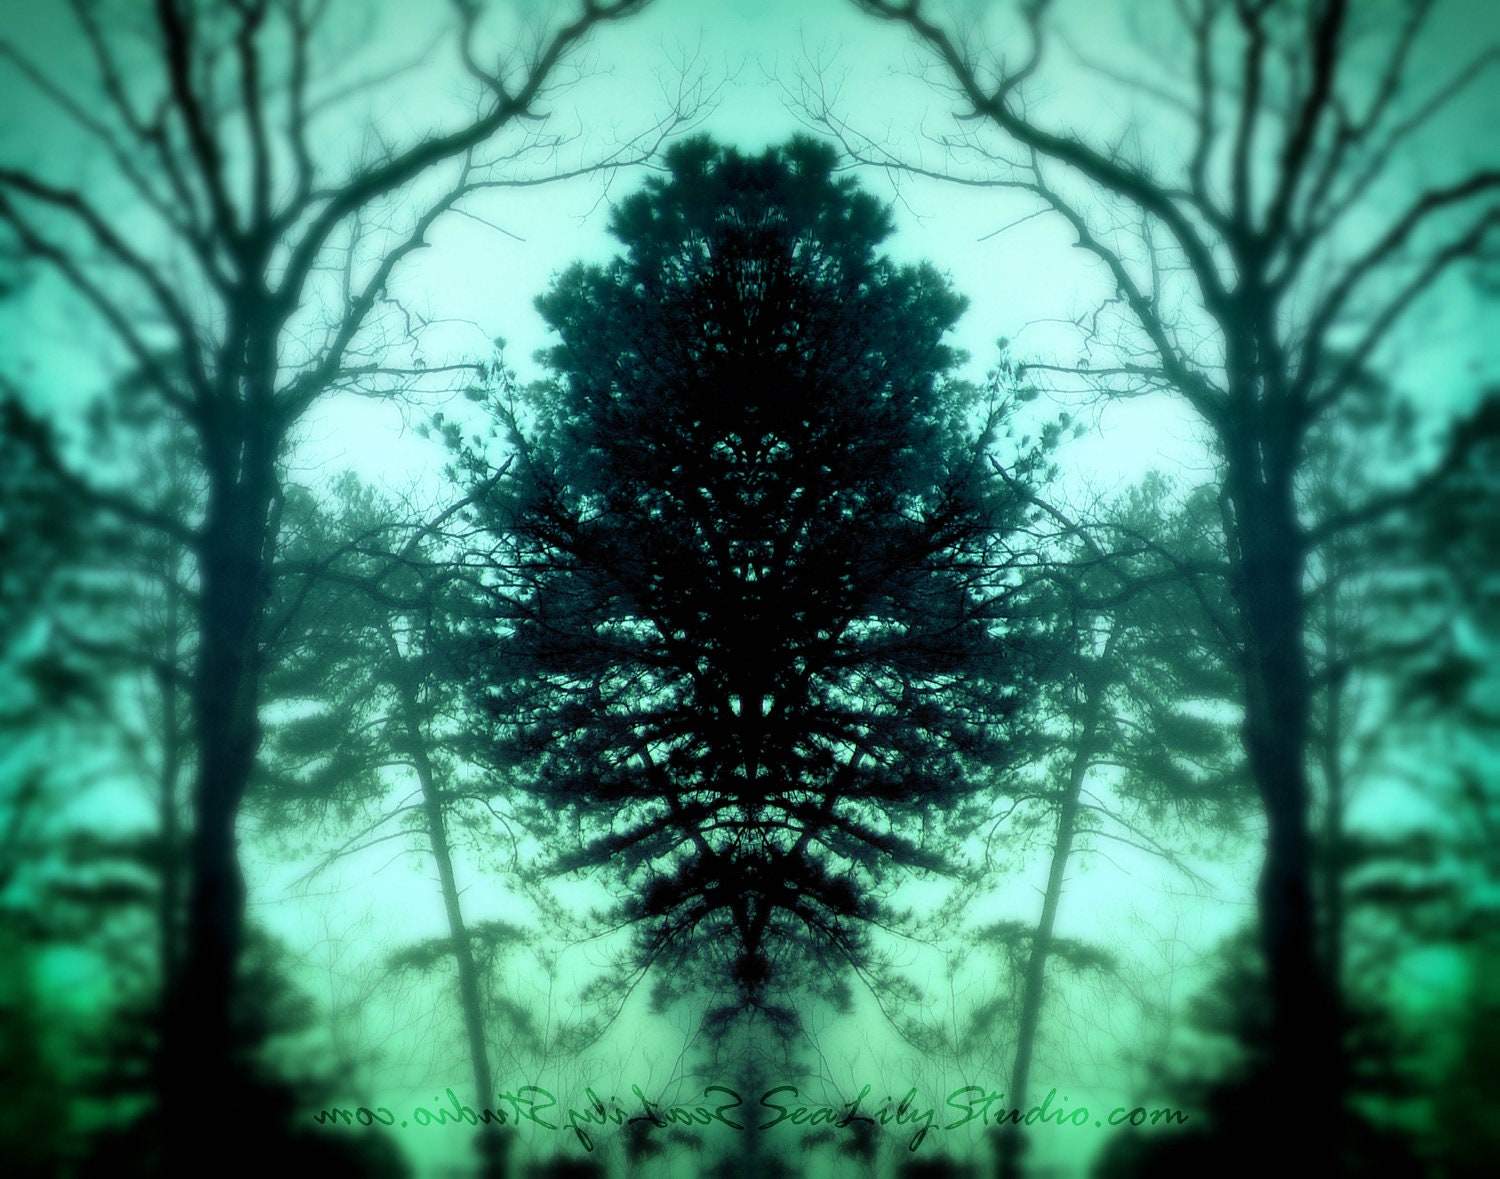 Dark Forest 11x14 surreal photo lake mist by SeaLilyStudio